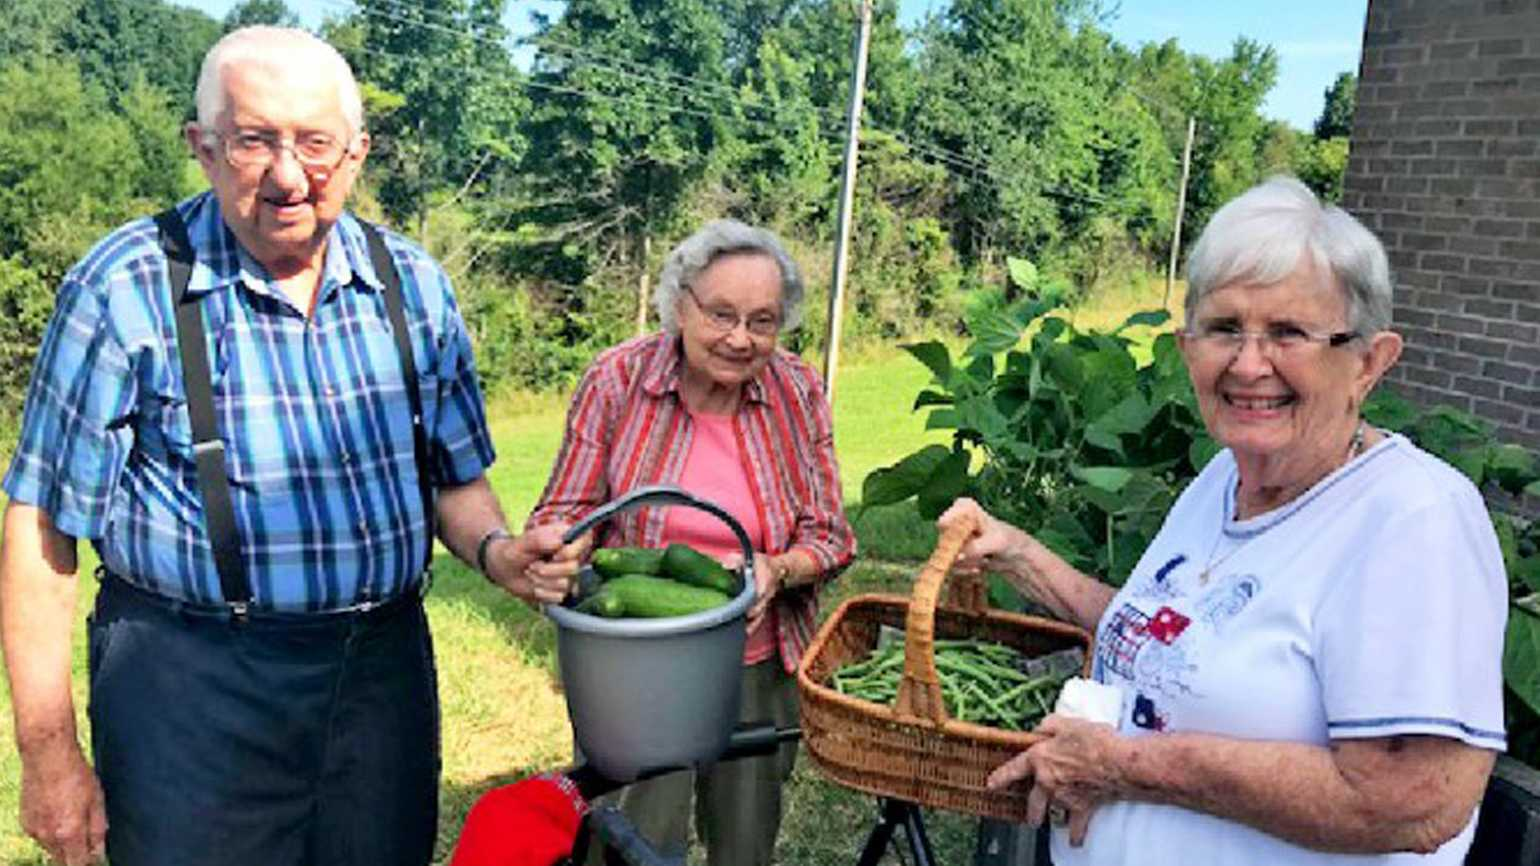 Billie Sakel (right) and her friends Lenus and Sarah Weisheit harvest vegetables from the garden areas at Northwood Retirement Community in Jasper, Indiana.